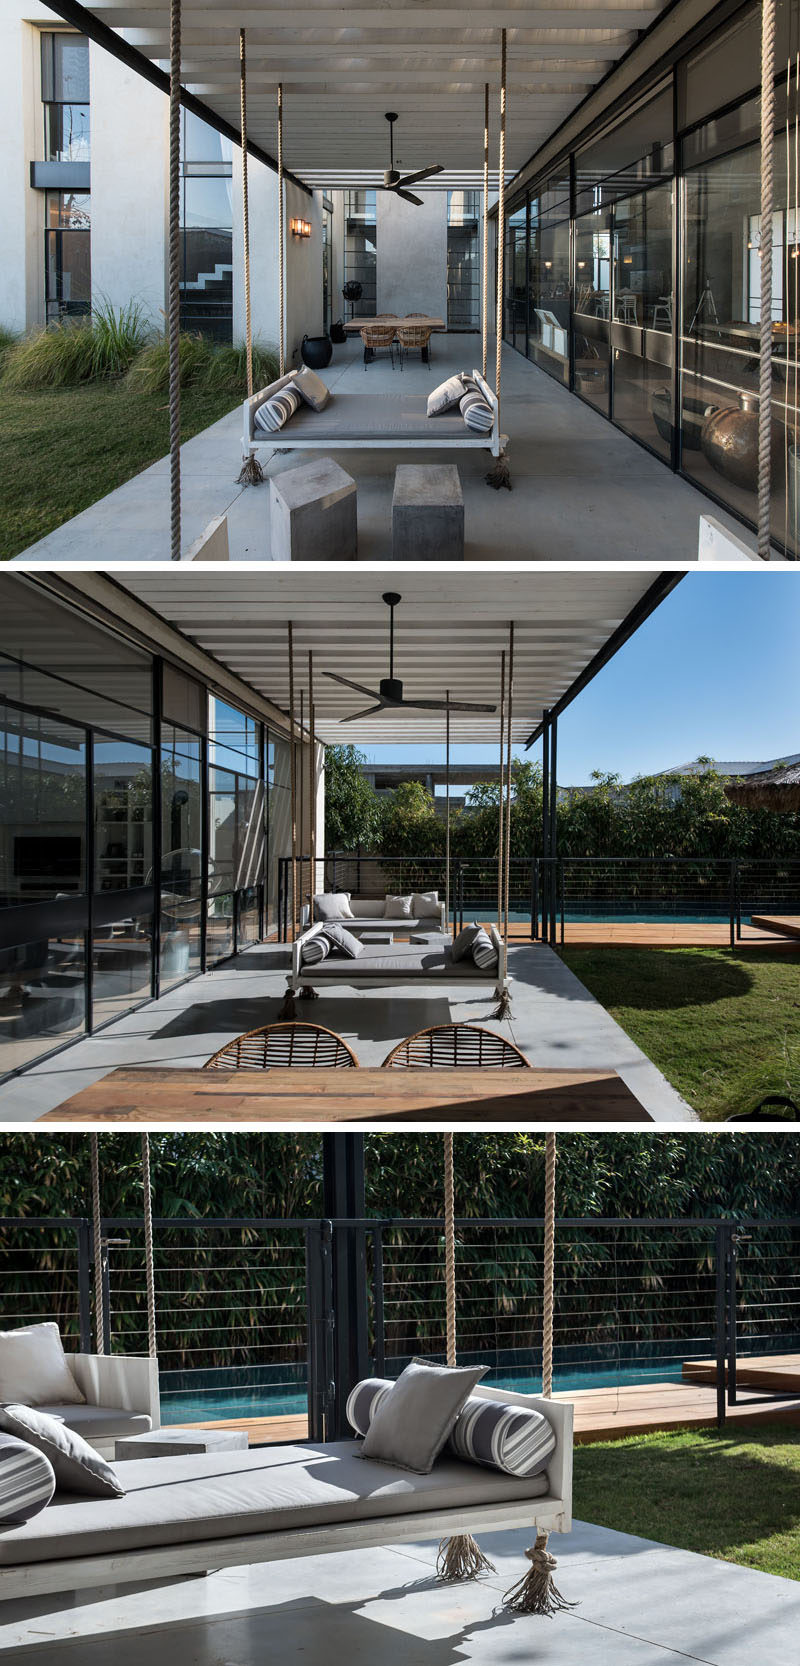 This covered patio is home to a couple of swing benches and an outdoor dining table.